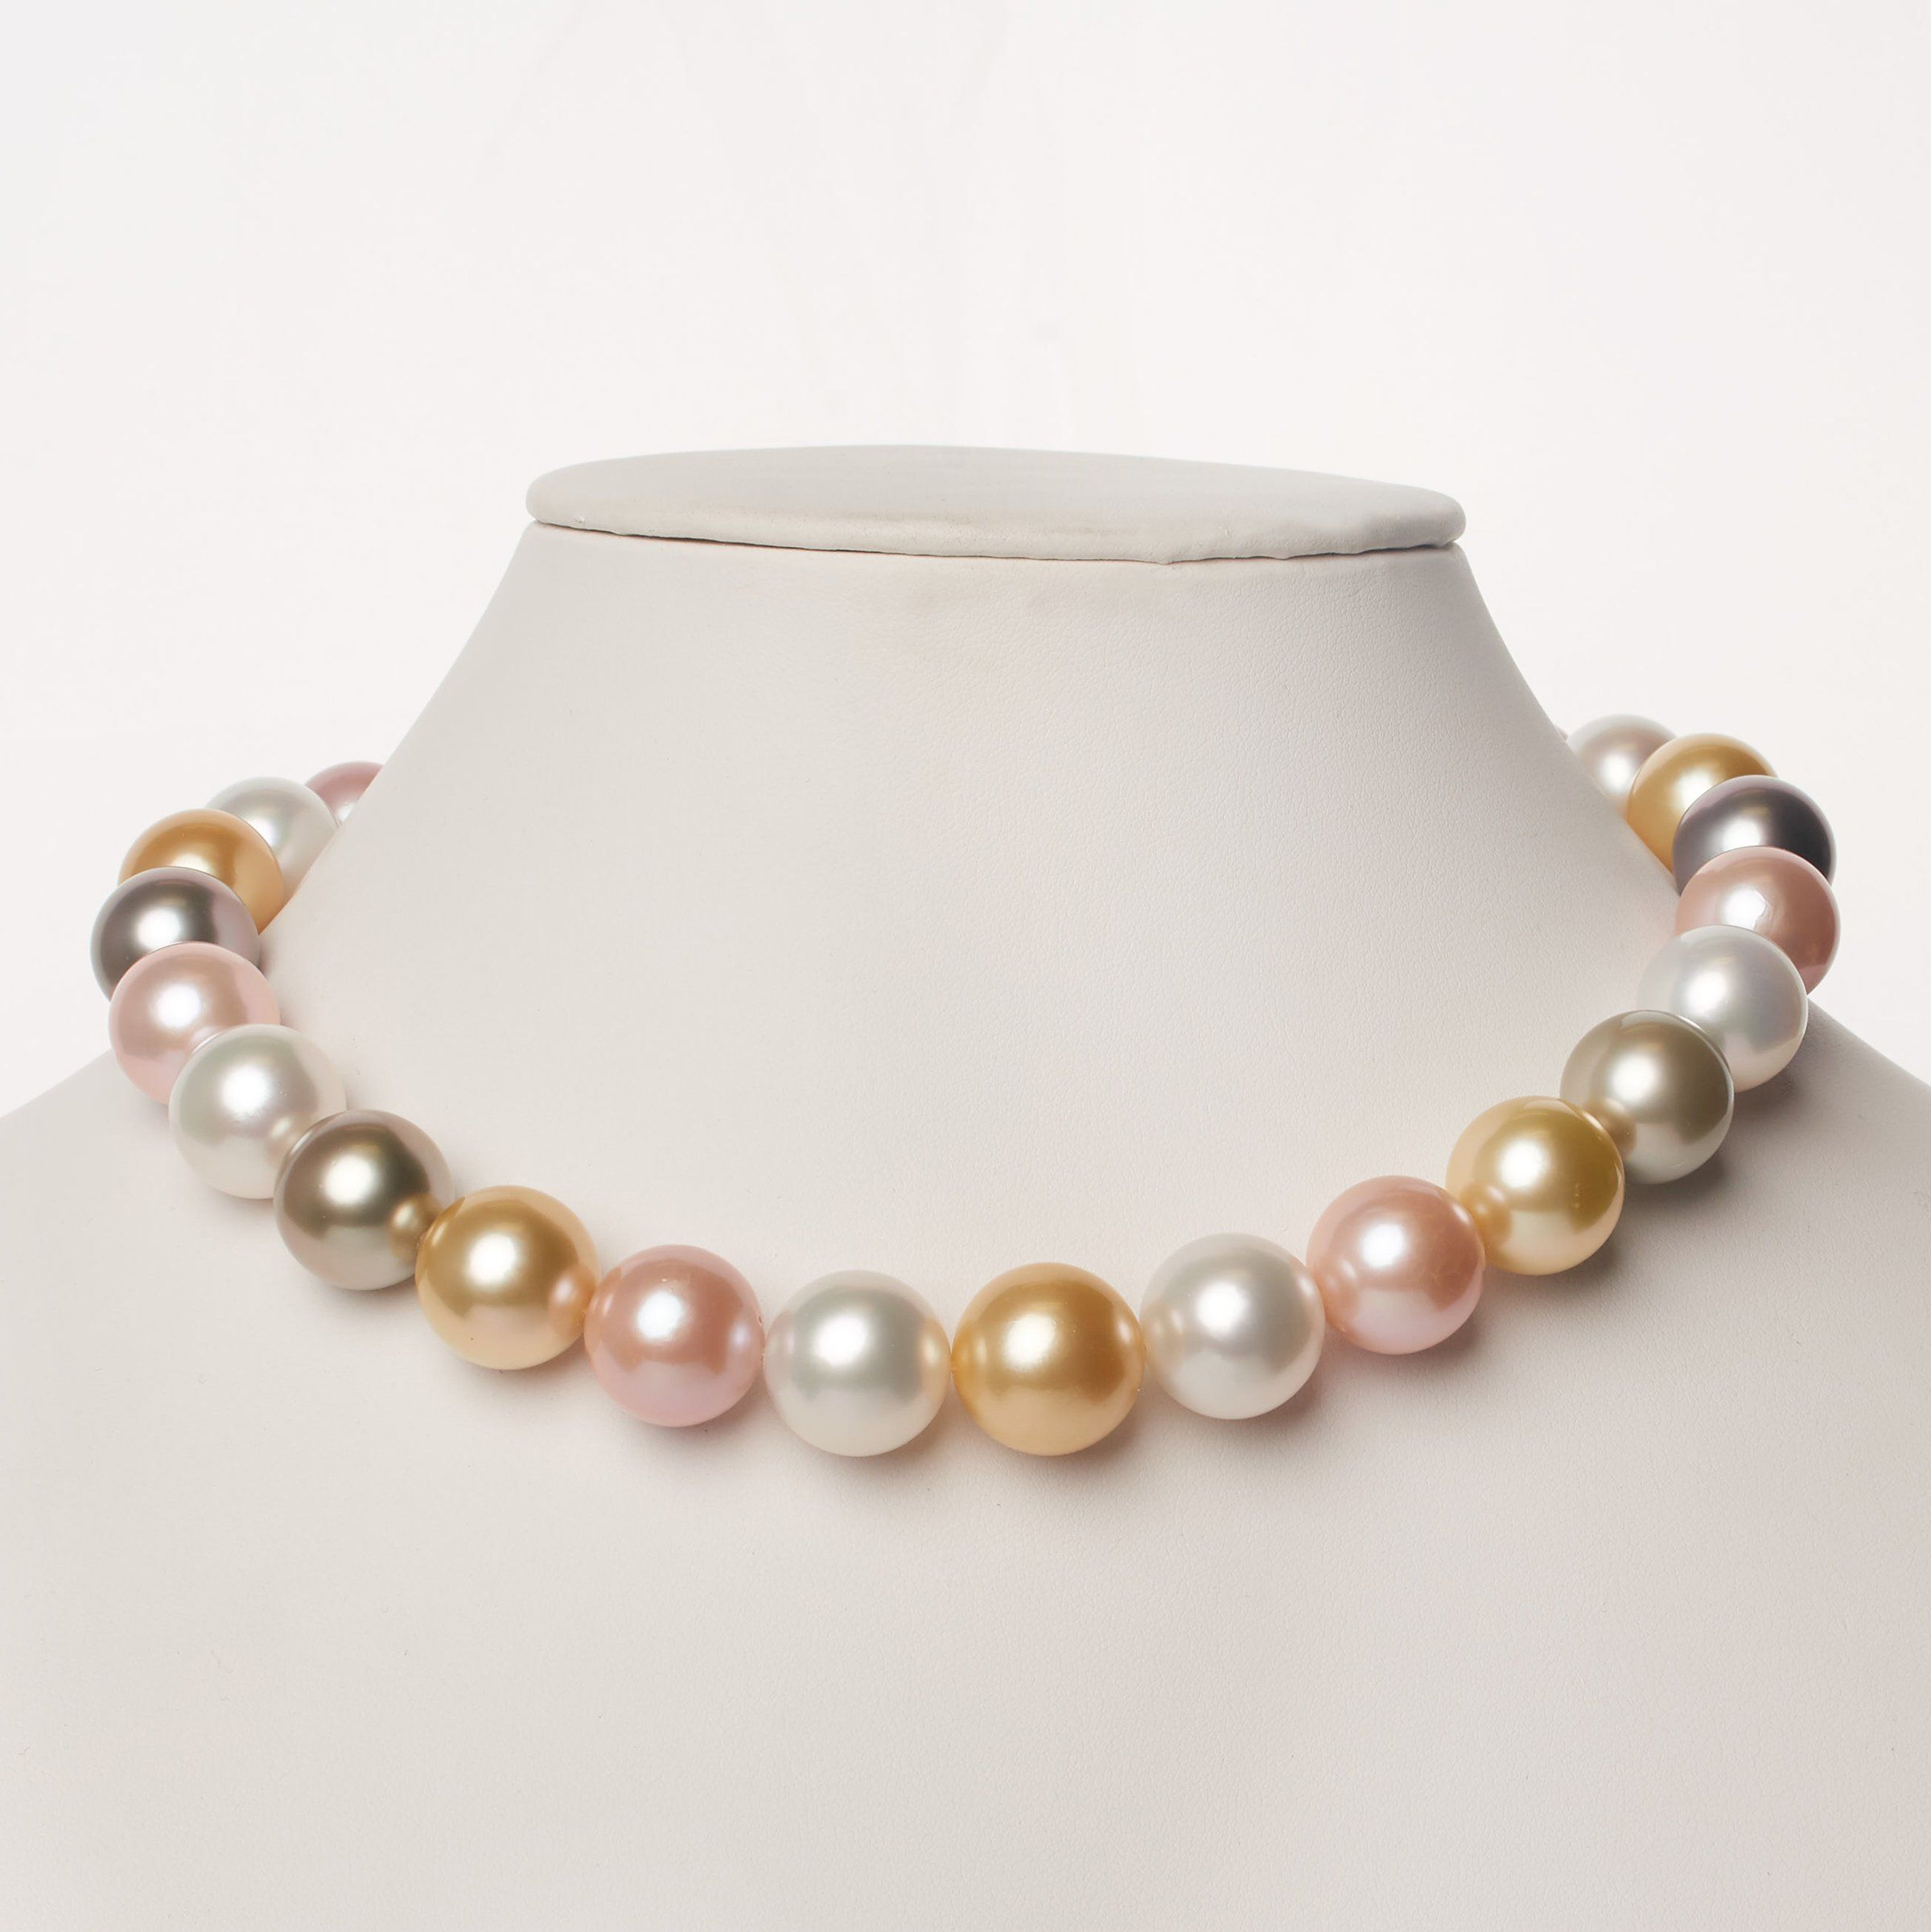 15.0-16.2 mm AAA Multicolored Round Pearl Necklace